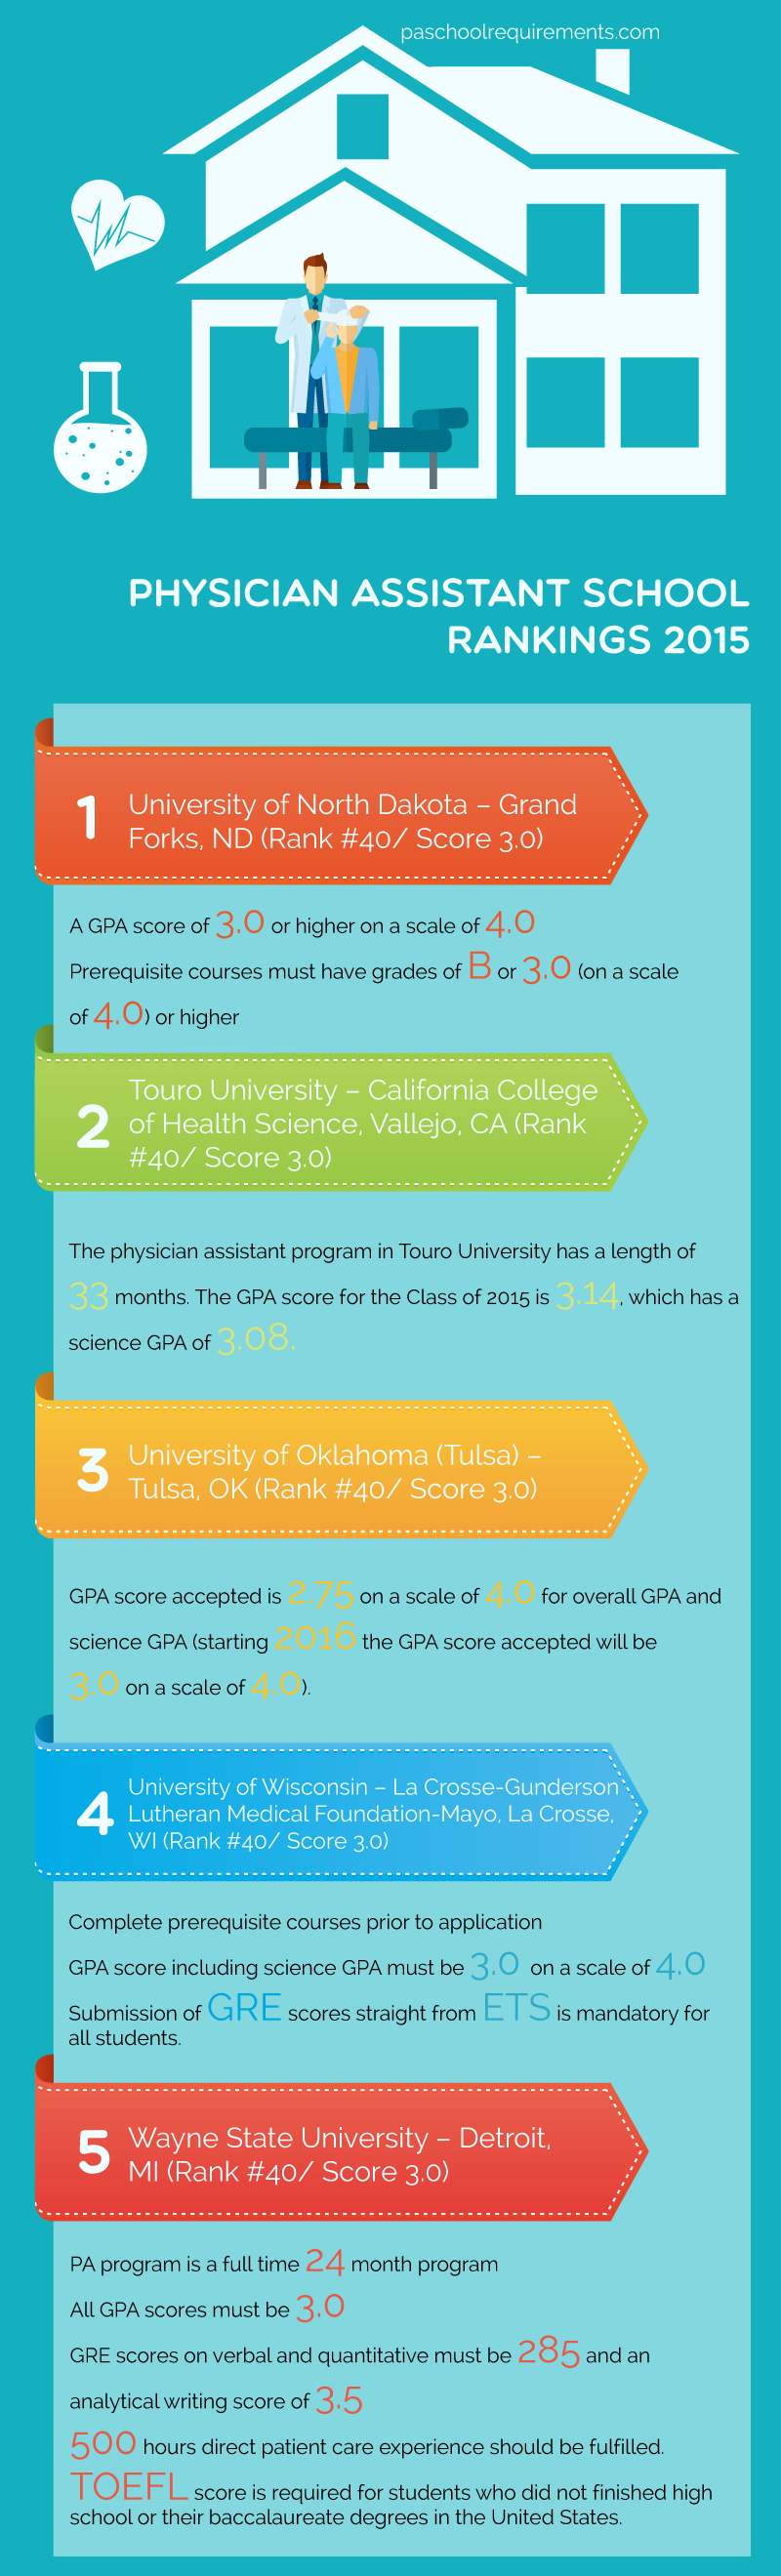 physician assistant school rankings